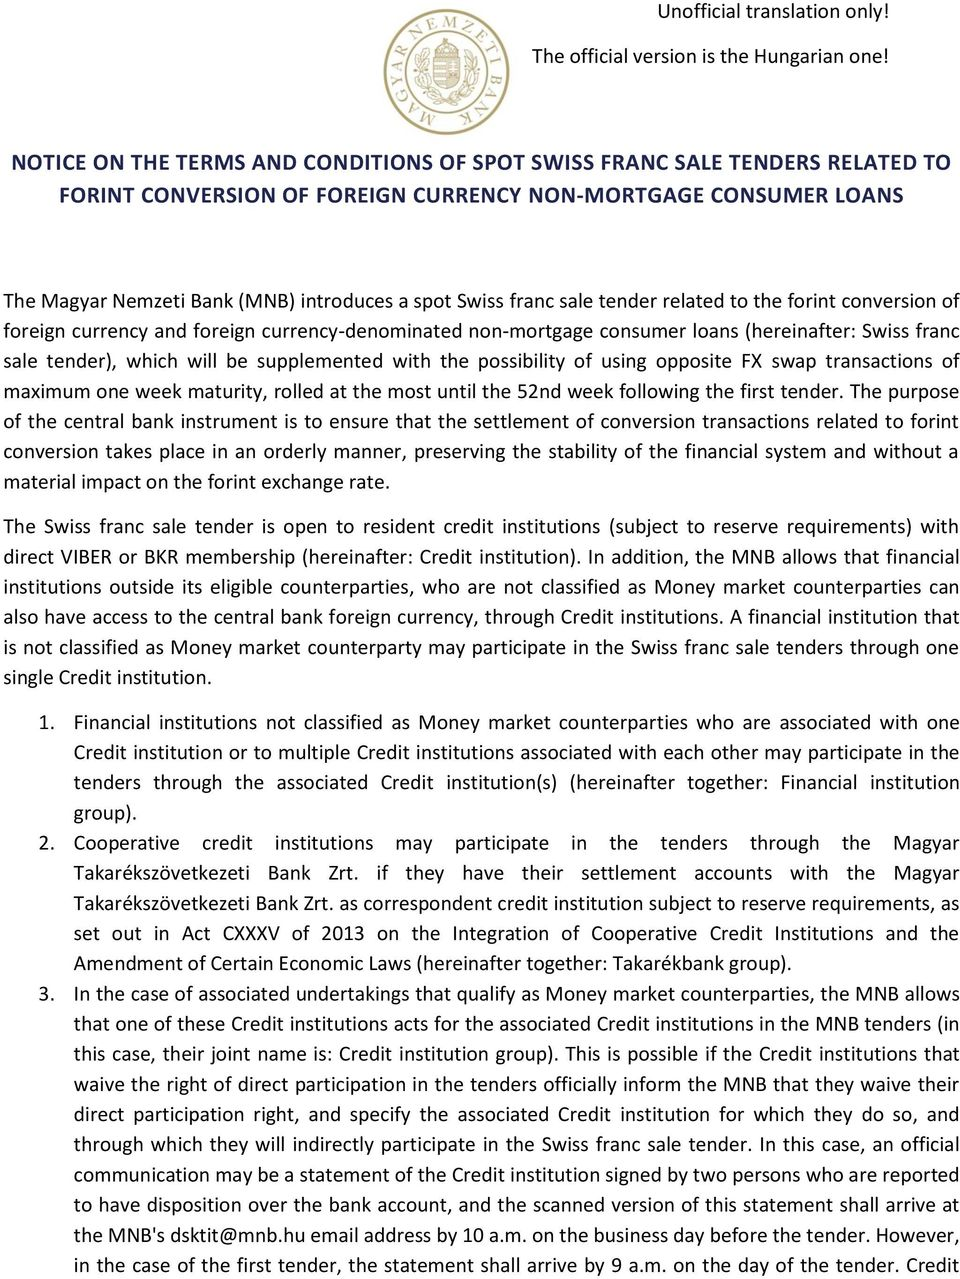 franc sale tender related to the forint conversion of foreign currency and foreign currency-denominated non-mortgage consumer loans (hereinafter: Swiss franc sale tender), which will be supplemented